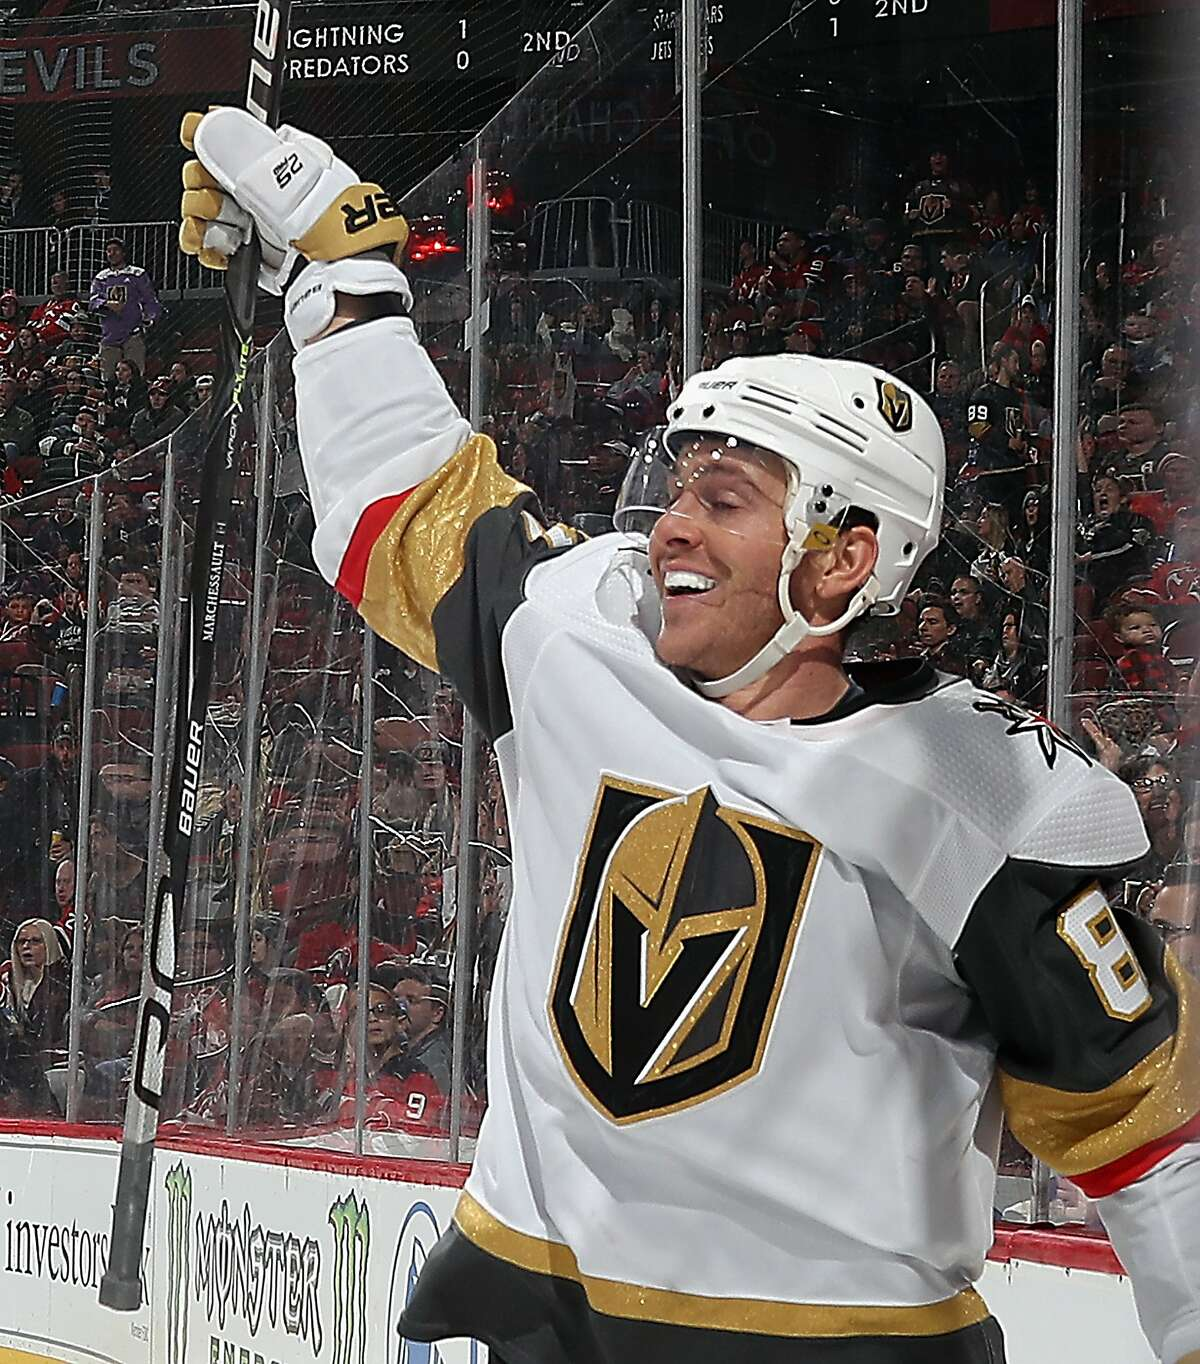 Jonathan Marchessault of the Golden Knights celebrates his hat trick in the third period.